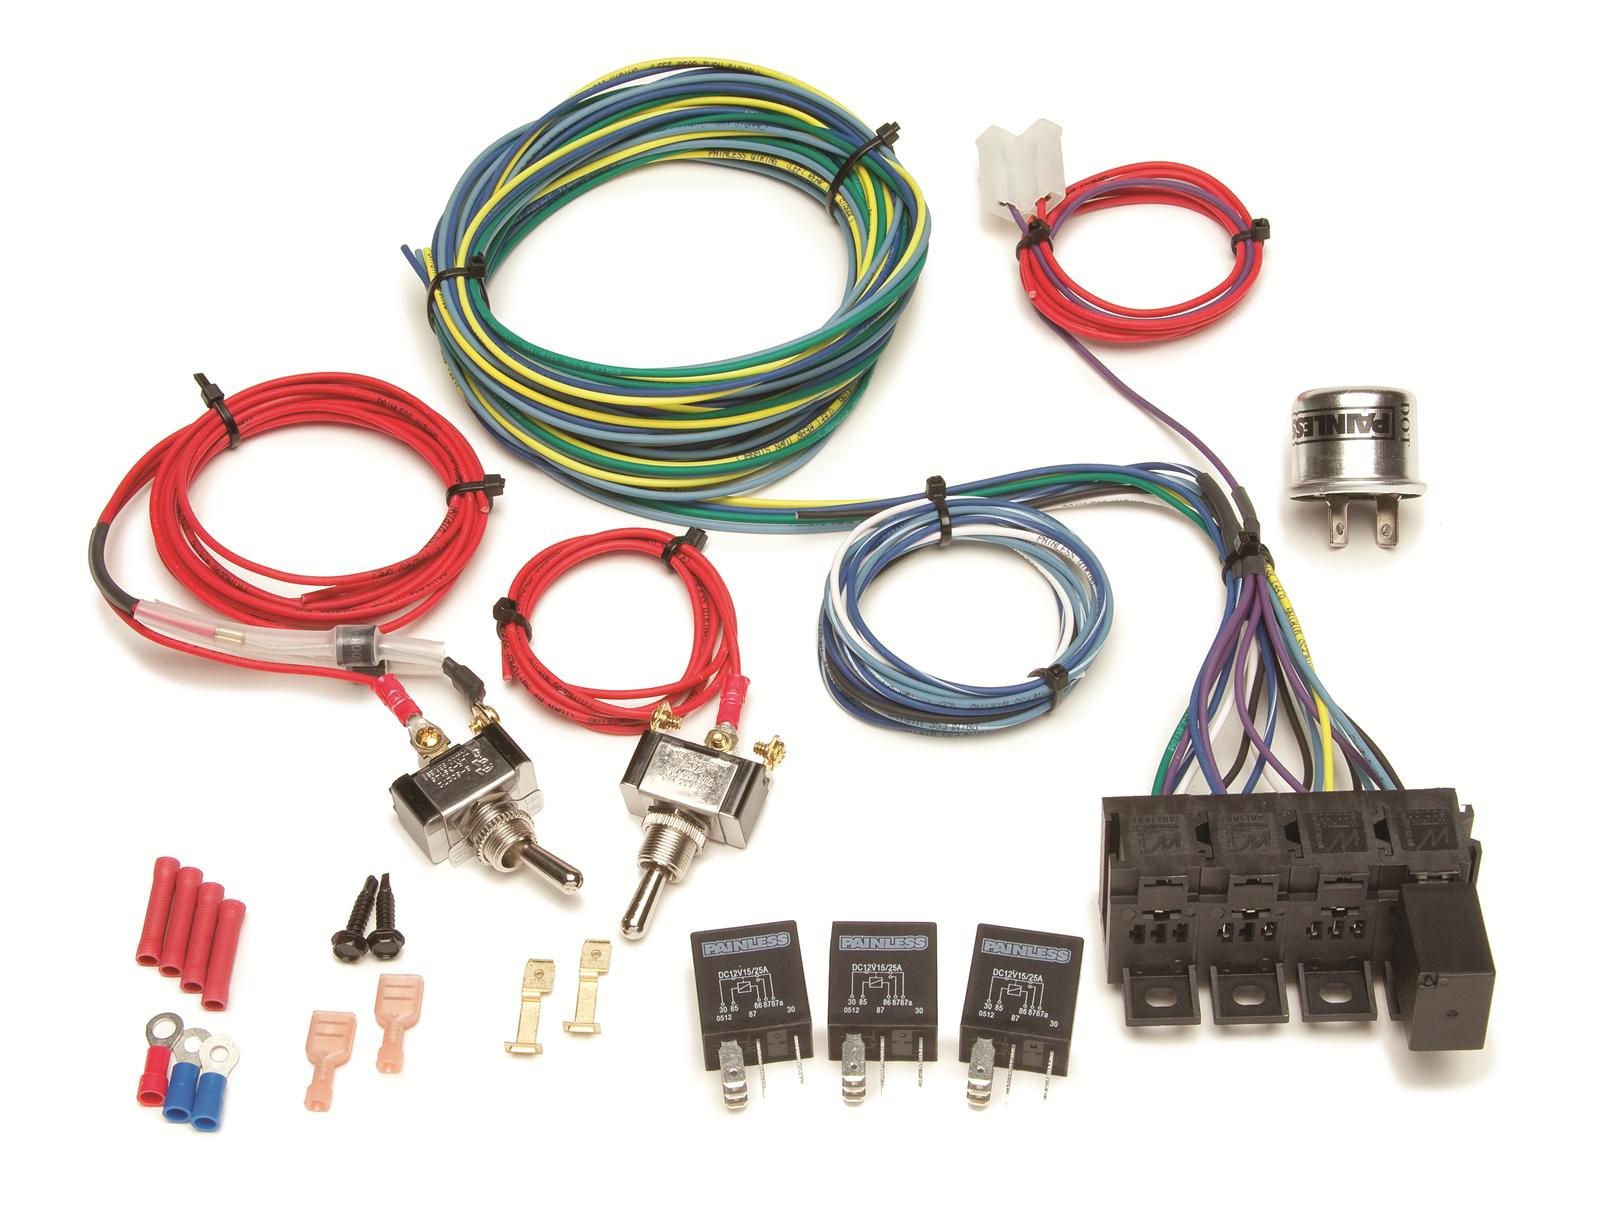 painless wiring 30120 universal wire harness summit ebay